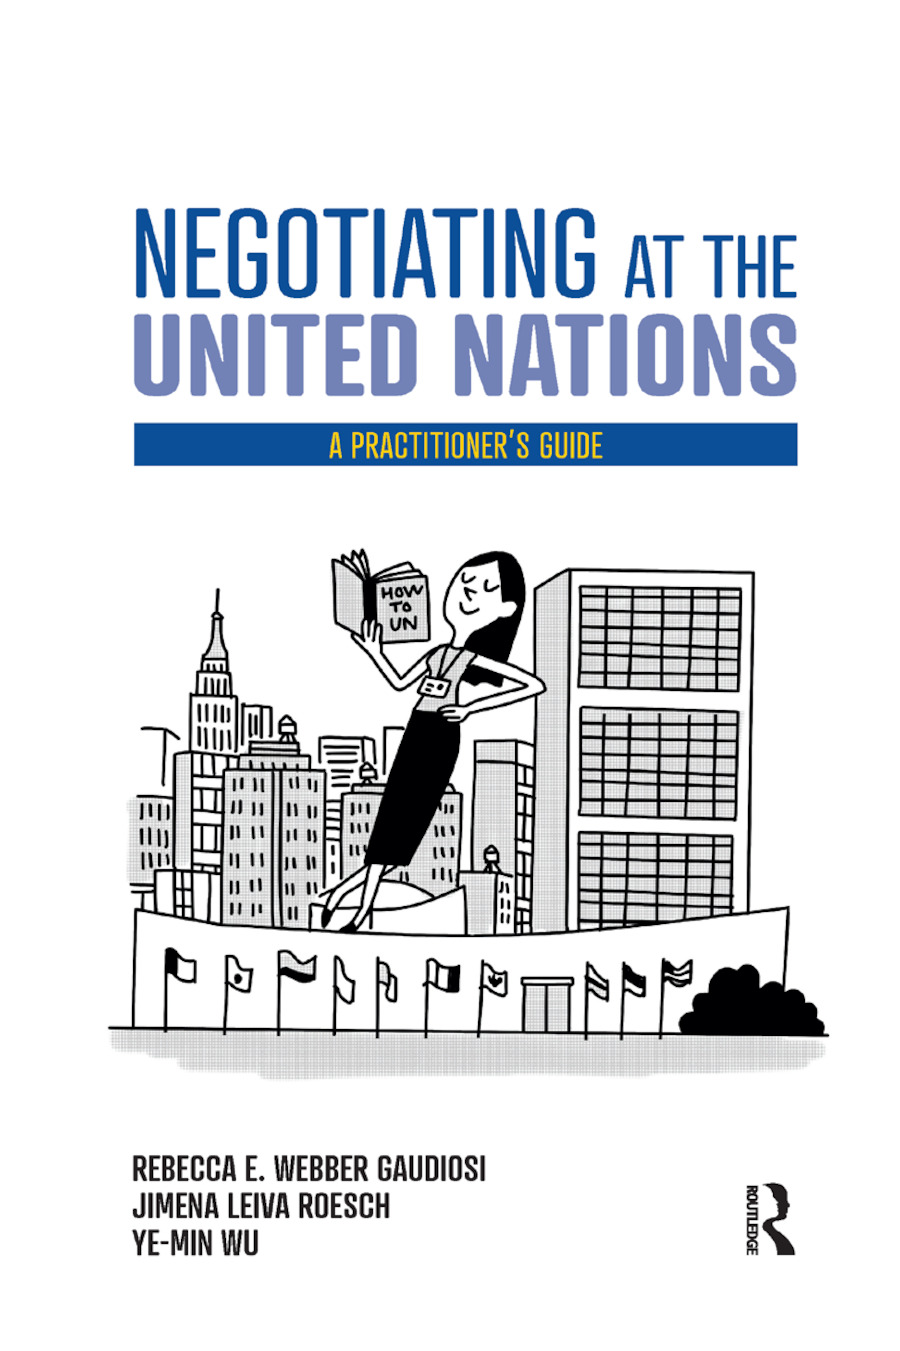 Negotiating at the United Nations